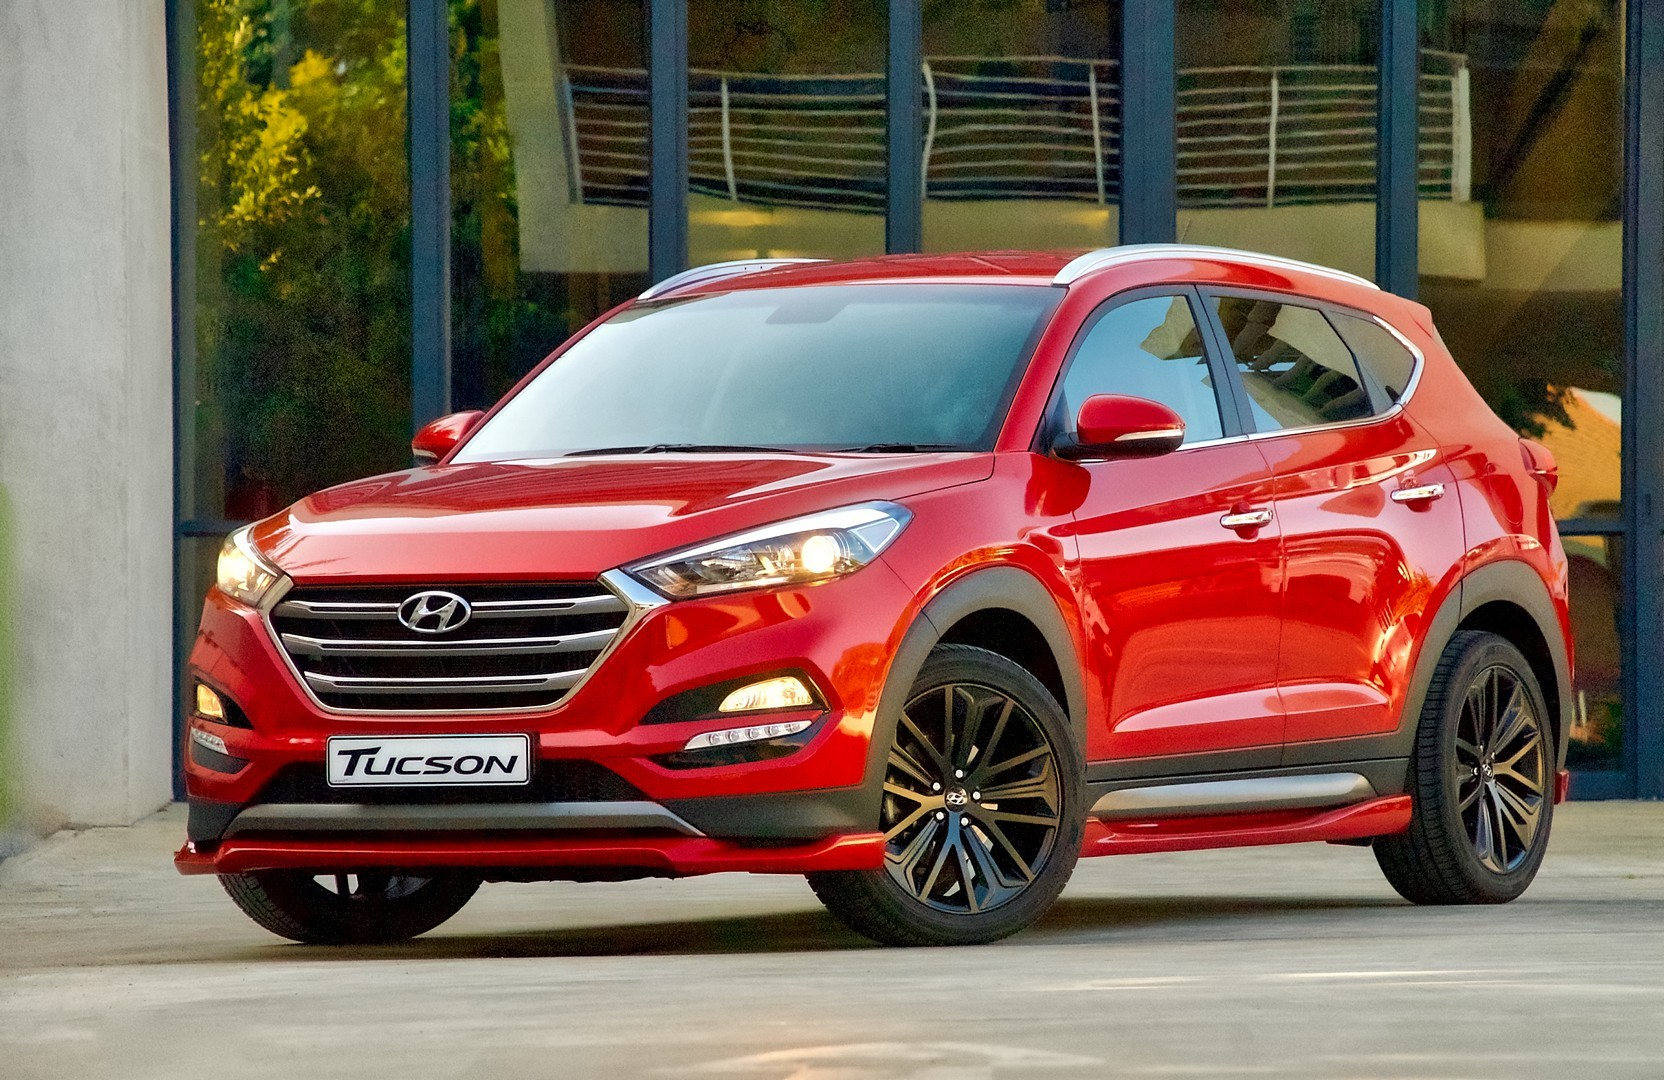 2018 Hyundai Tucson Sport Is No Tucson N Sport, But Packs ...